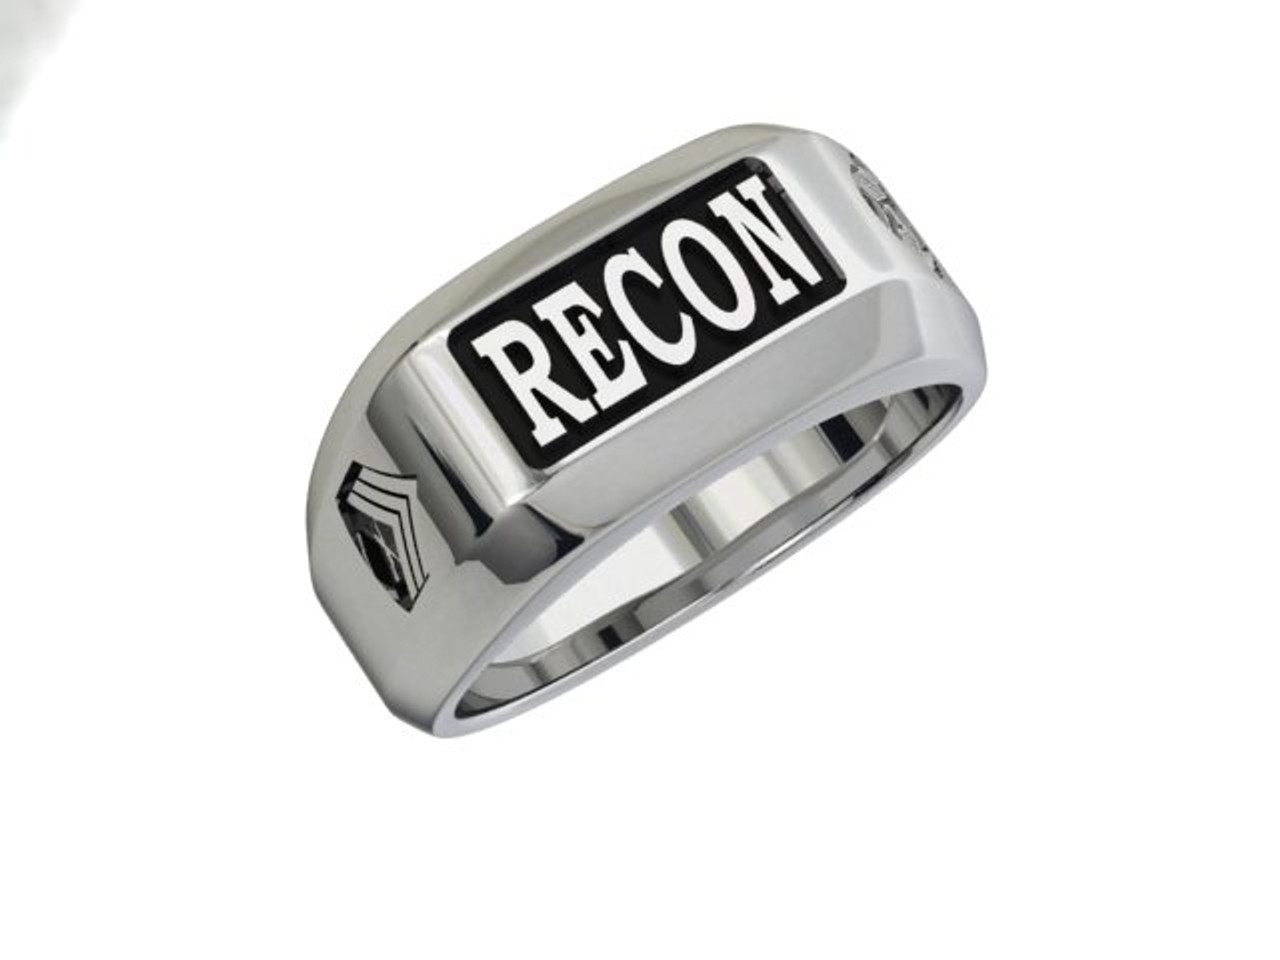 USMC Recon Ring with Combat Diver & Rank  in Solid Sterling Silver